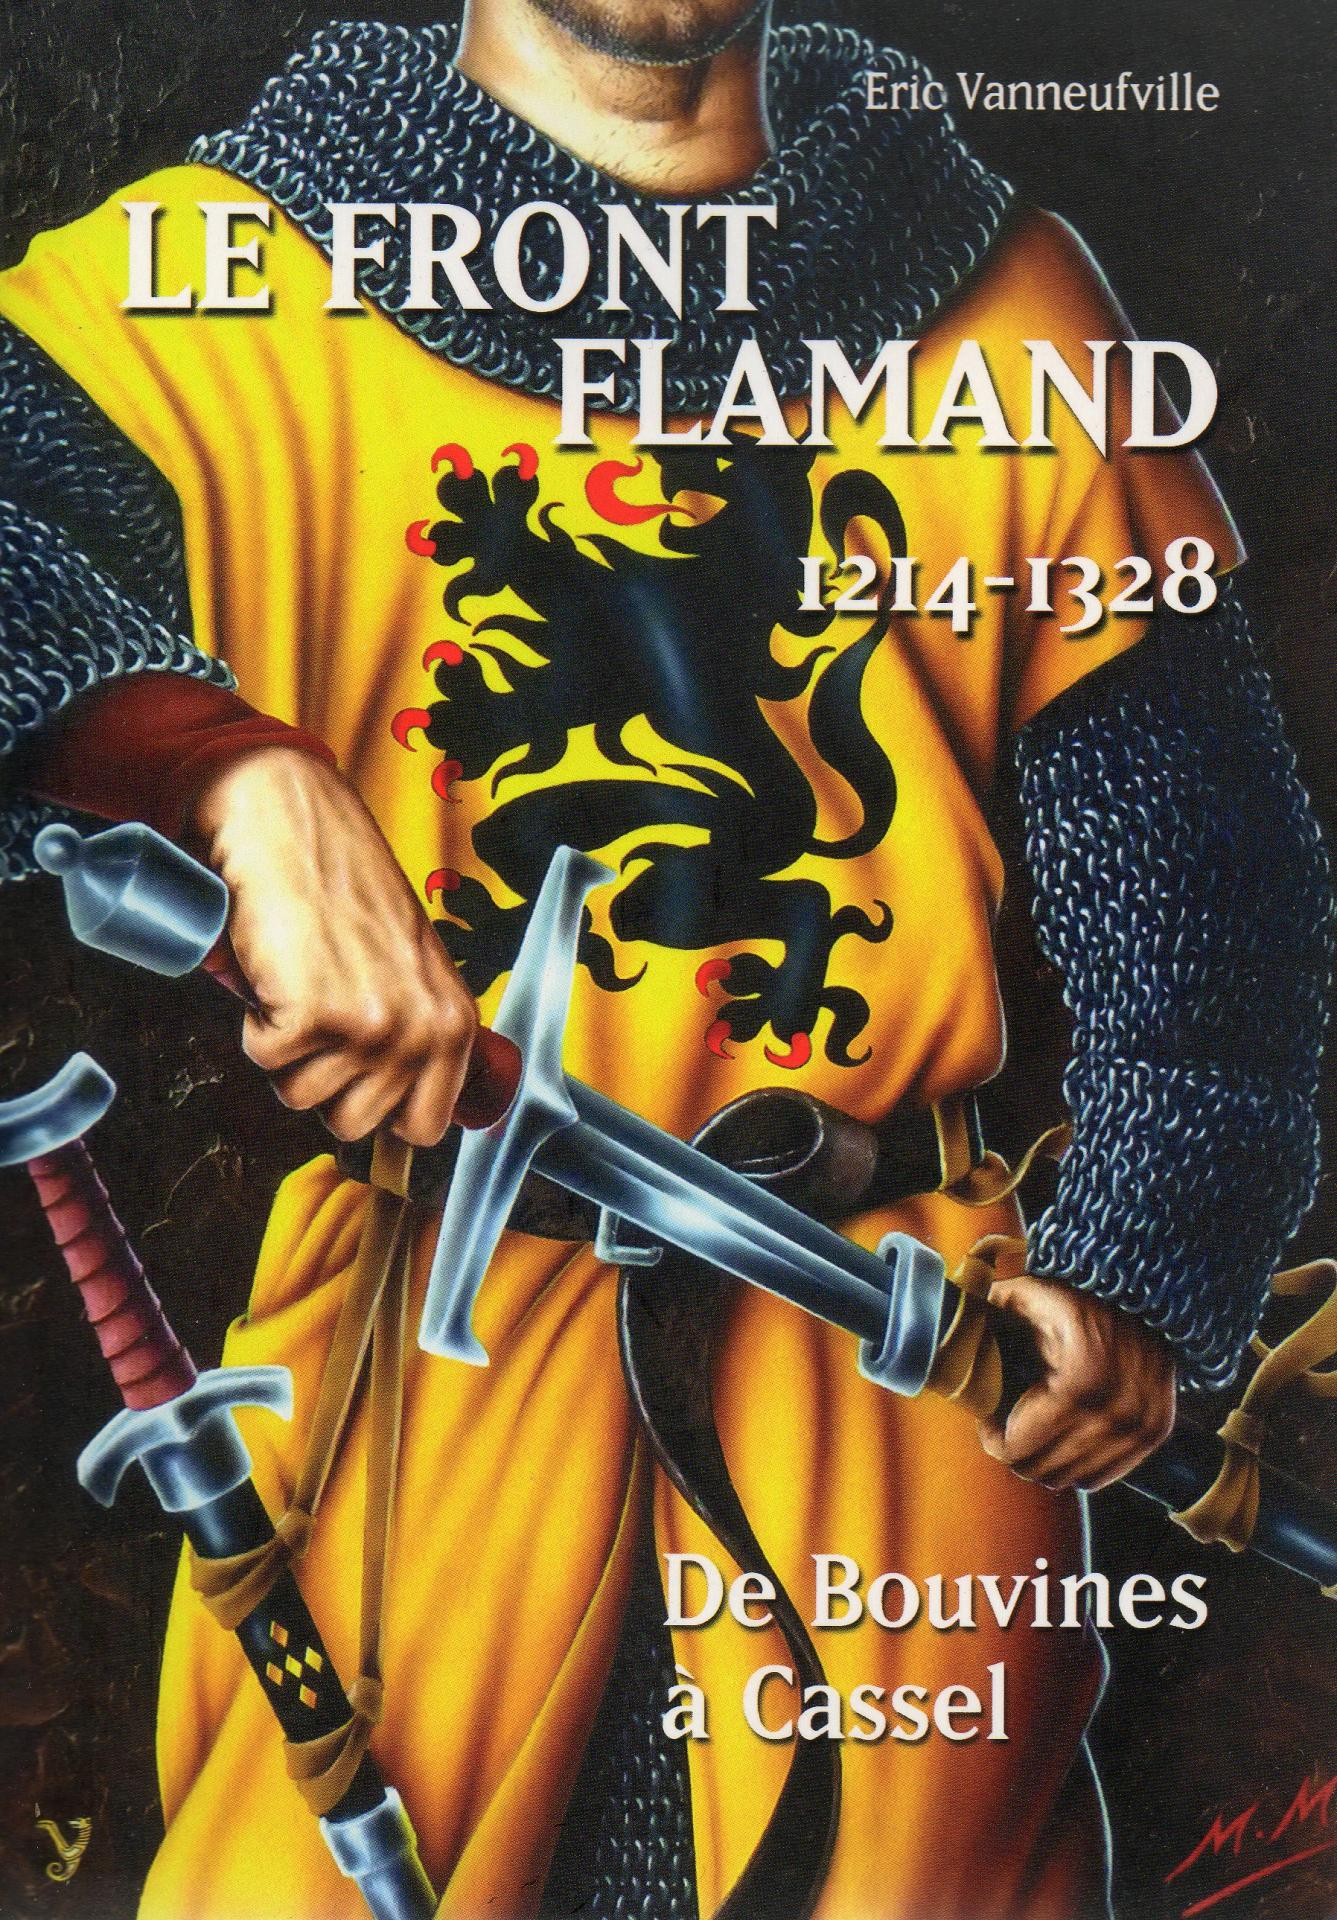 Le front flamand